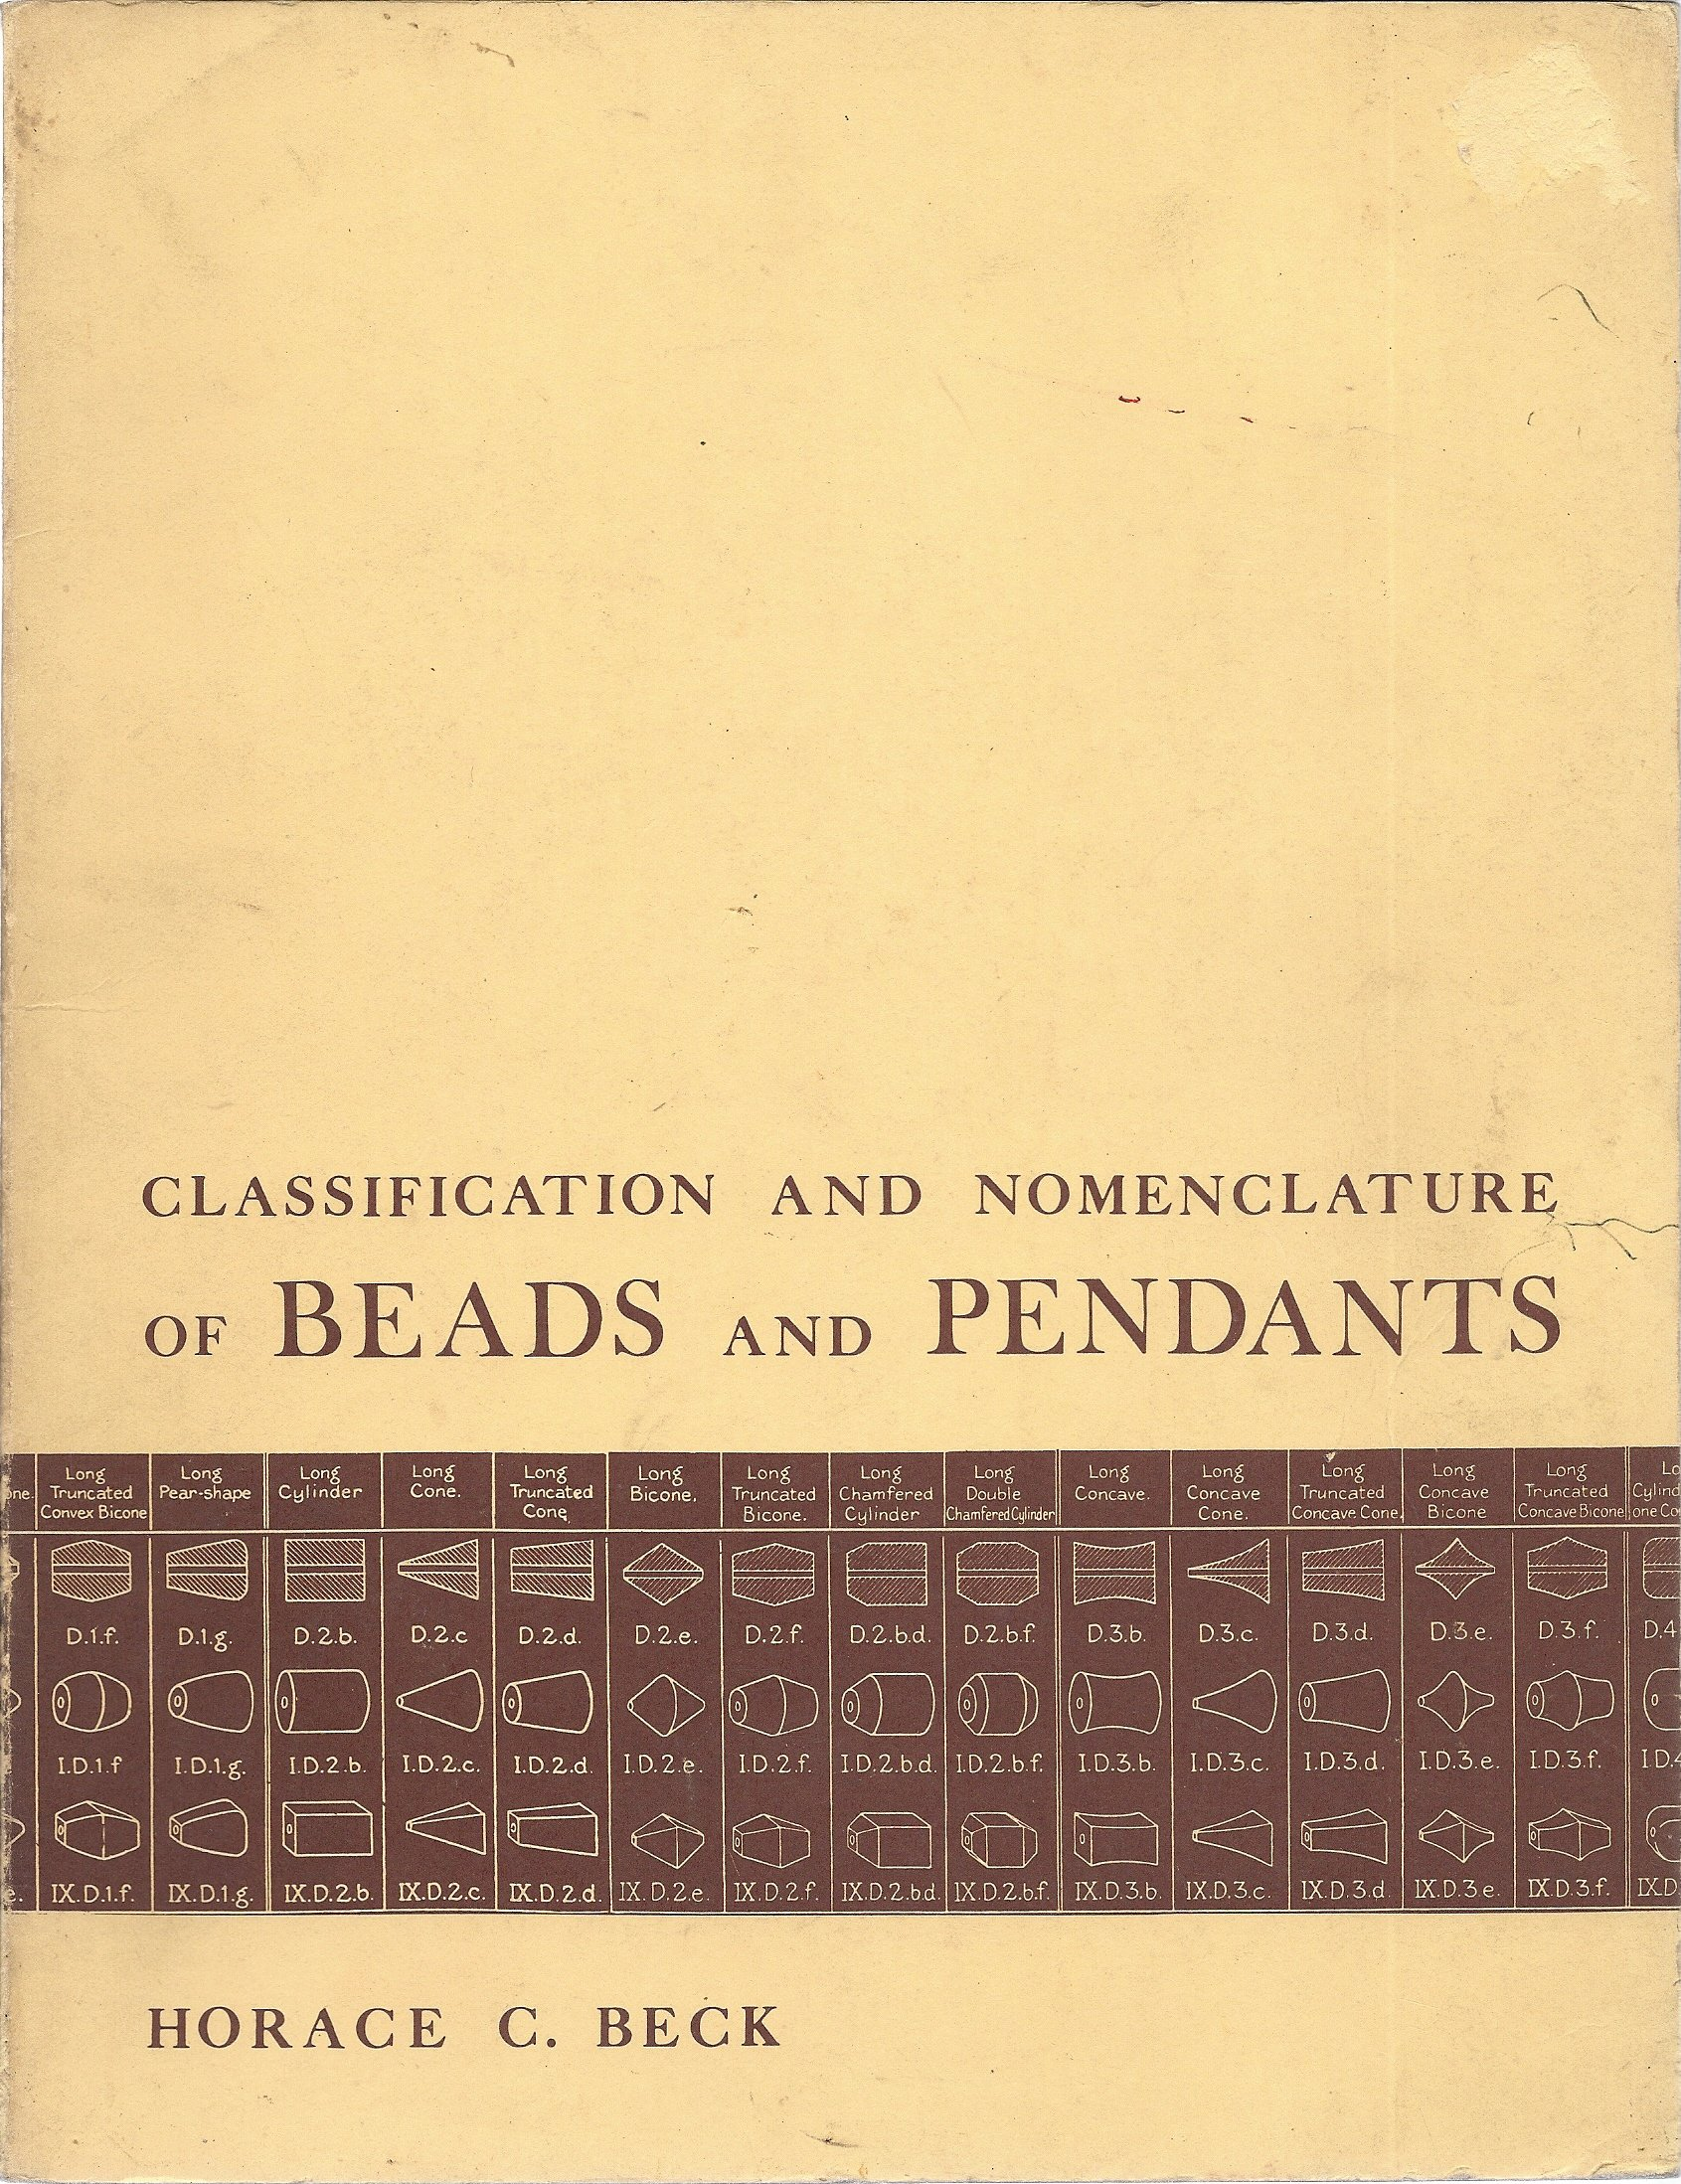 Classification and Nomenclature of Beads and Pendants